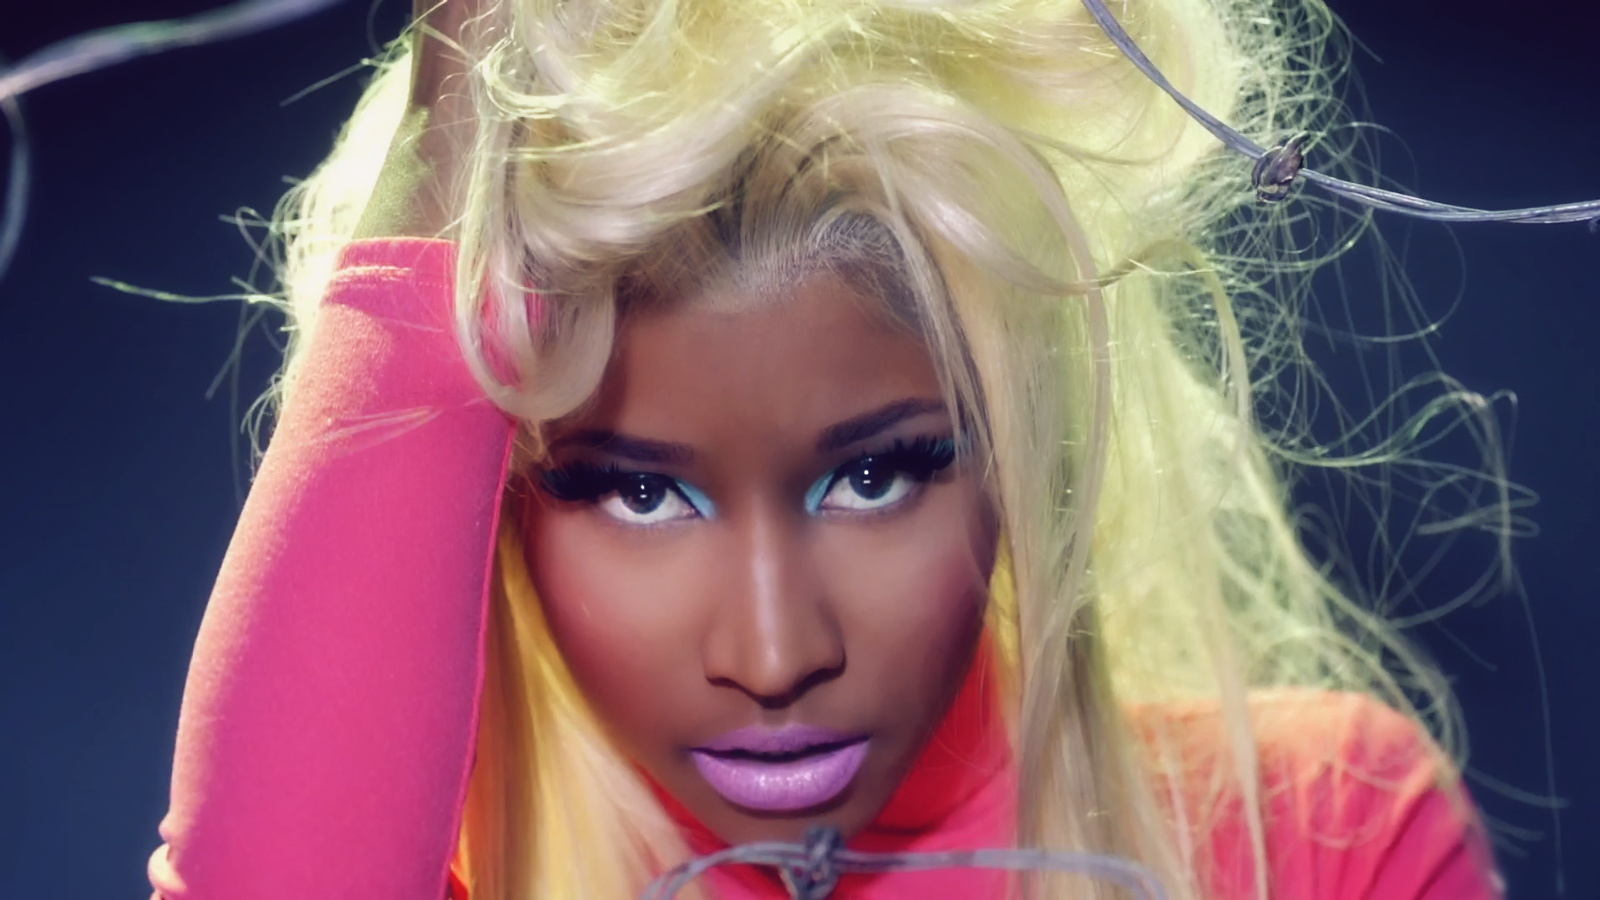 Nicki Minaj wallpaper The Wallpapers HD Wallpapers For 1600x900